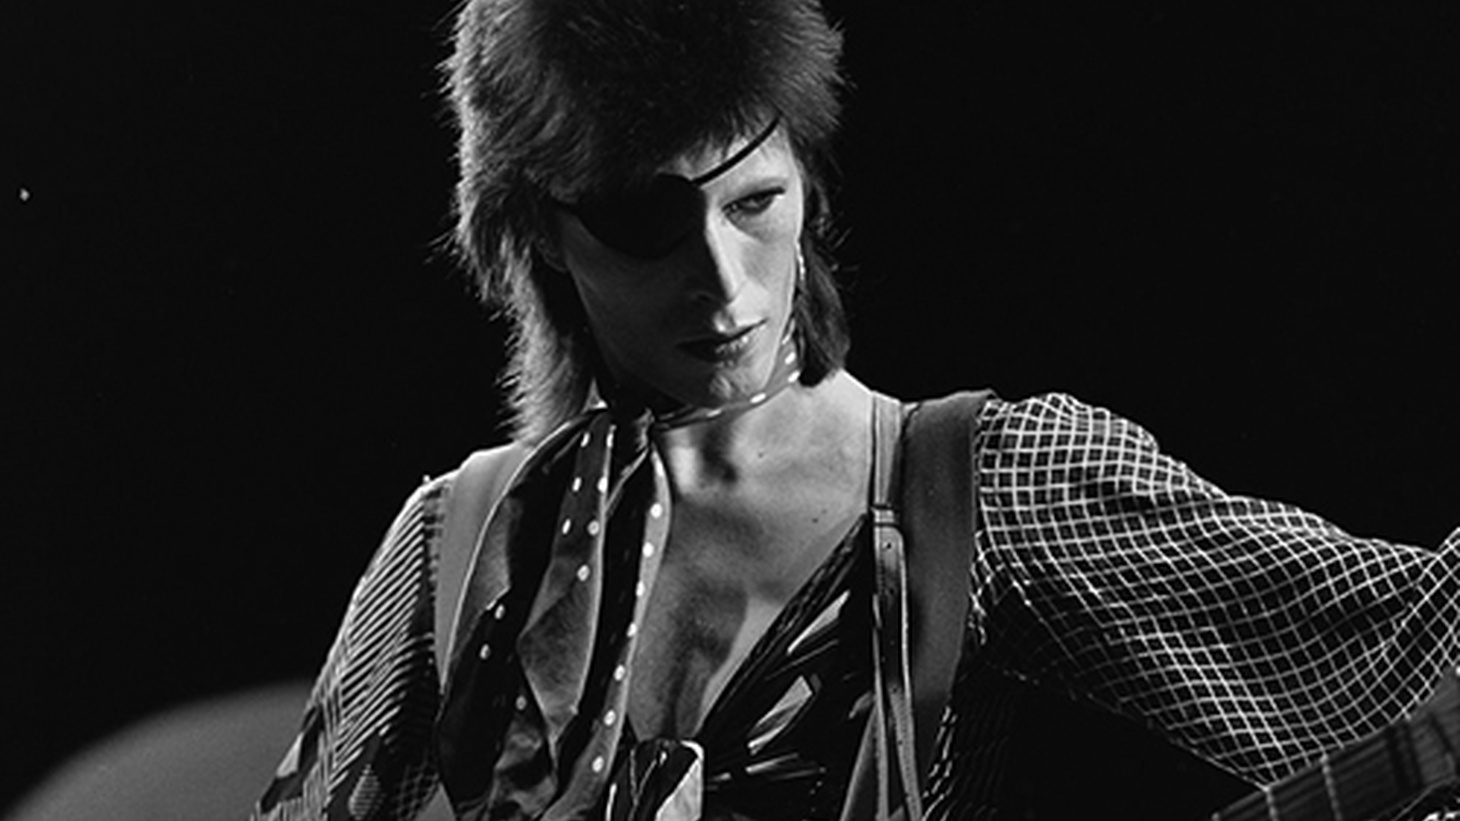 Travis pays tribute to the incredible life and work of David Bowie - Part 2 of 2.